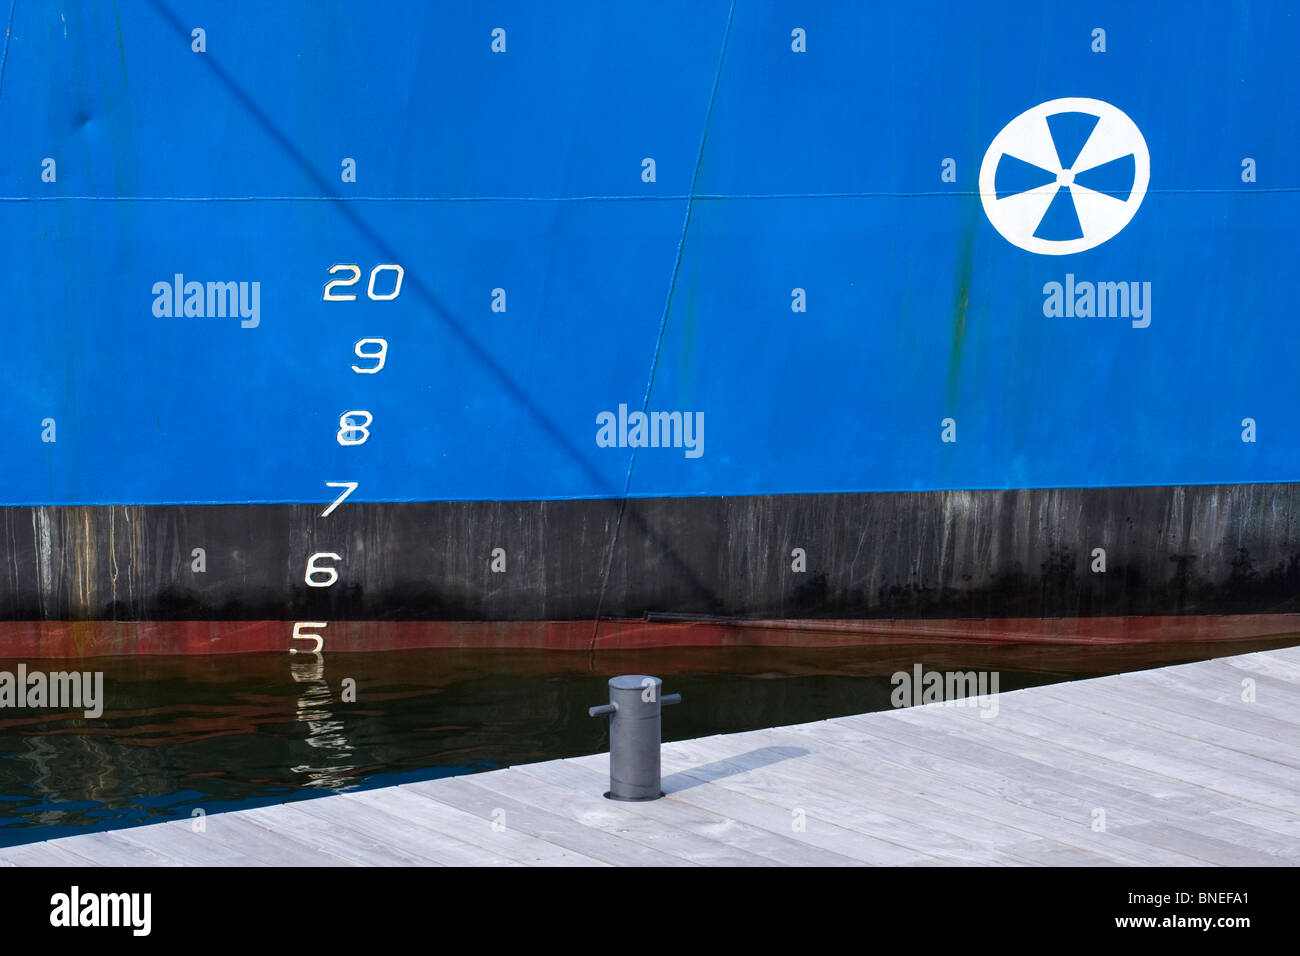 Steel Hull of Blue Boat in water with Draft Markings and Pier Cleat on Dock. - Stock Image